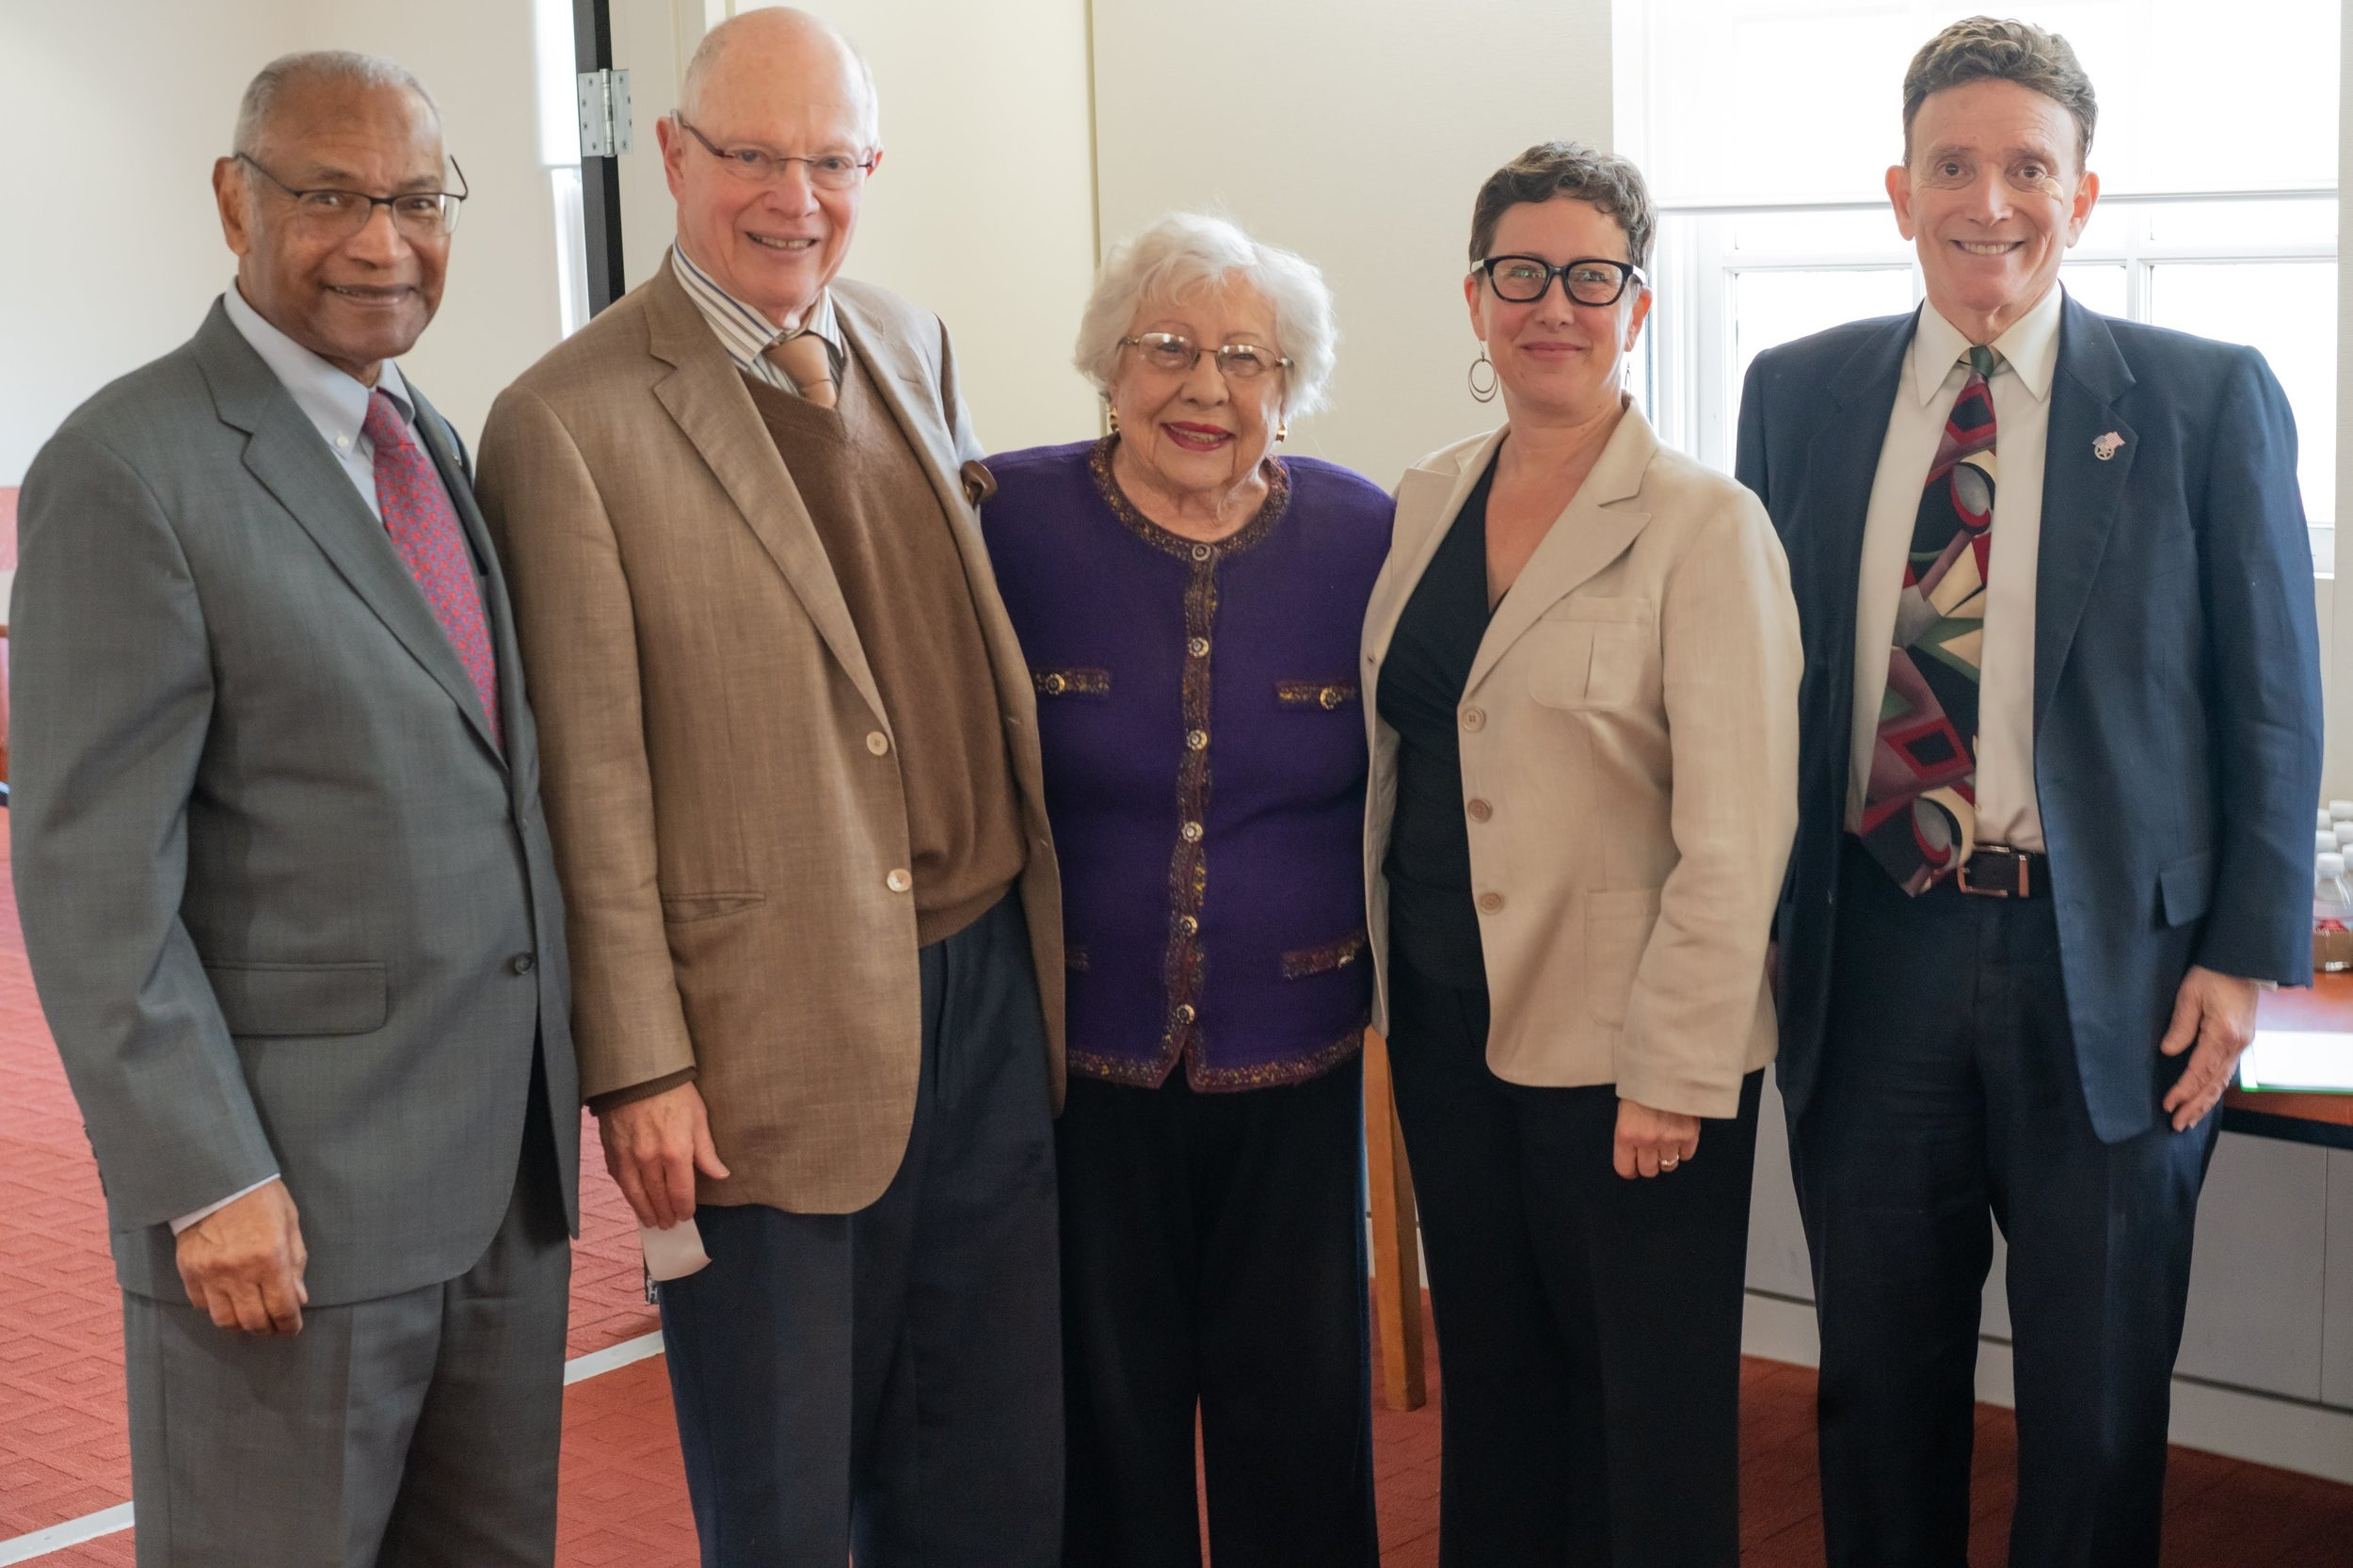 Board members Judge Terry Hatter, Max Factor, founder Judge Dorothy Nelson, Executive Director Elissa Barrett, and board member Judge Barry Russell.